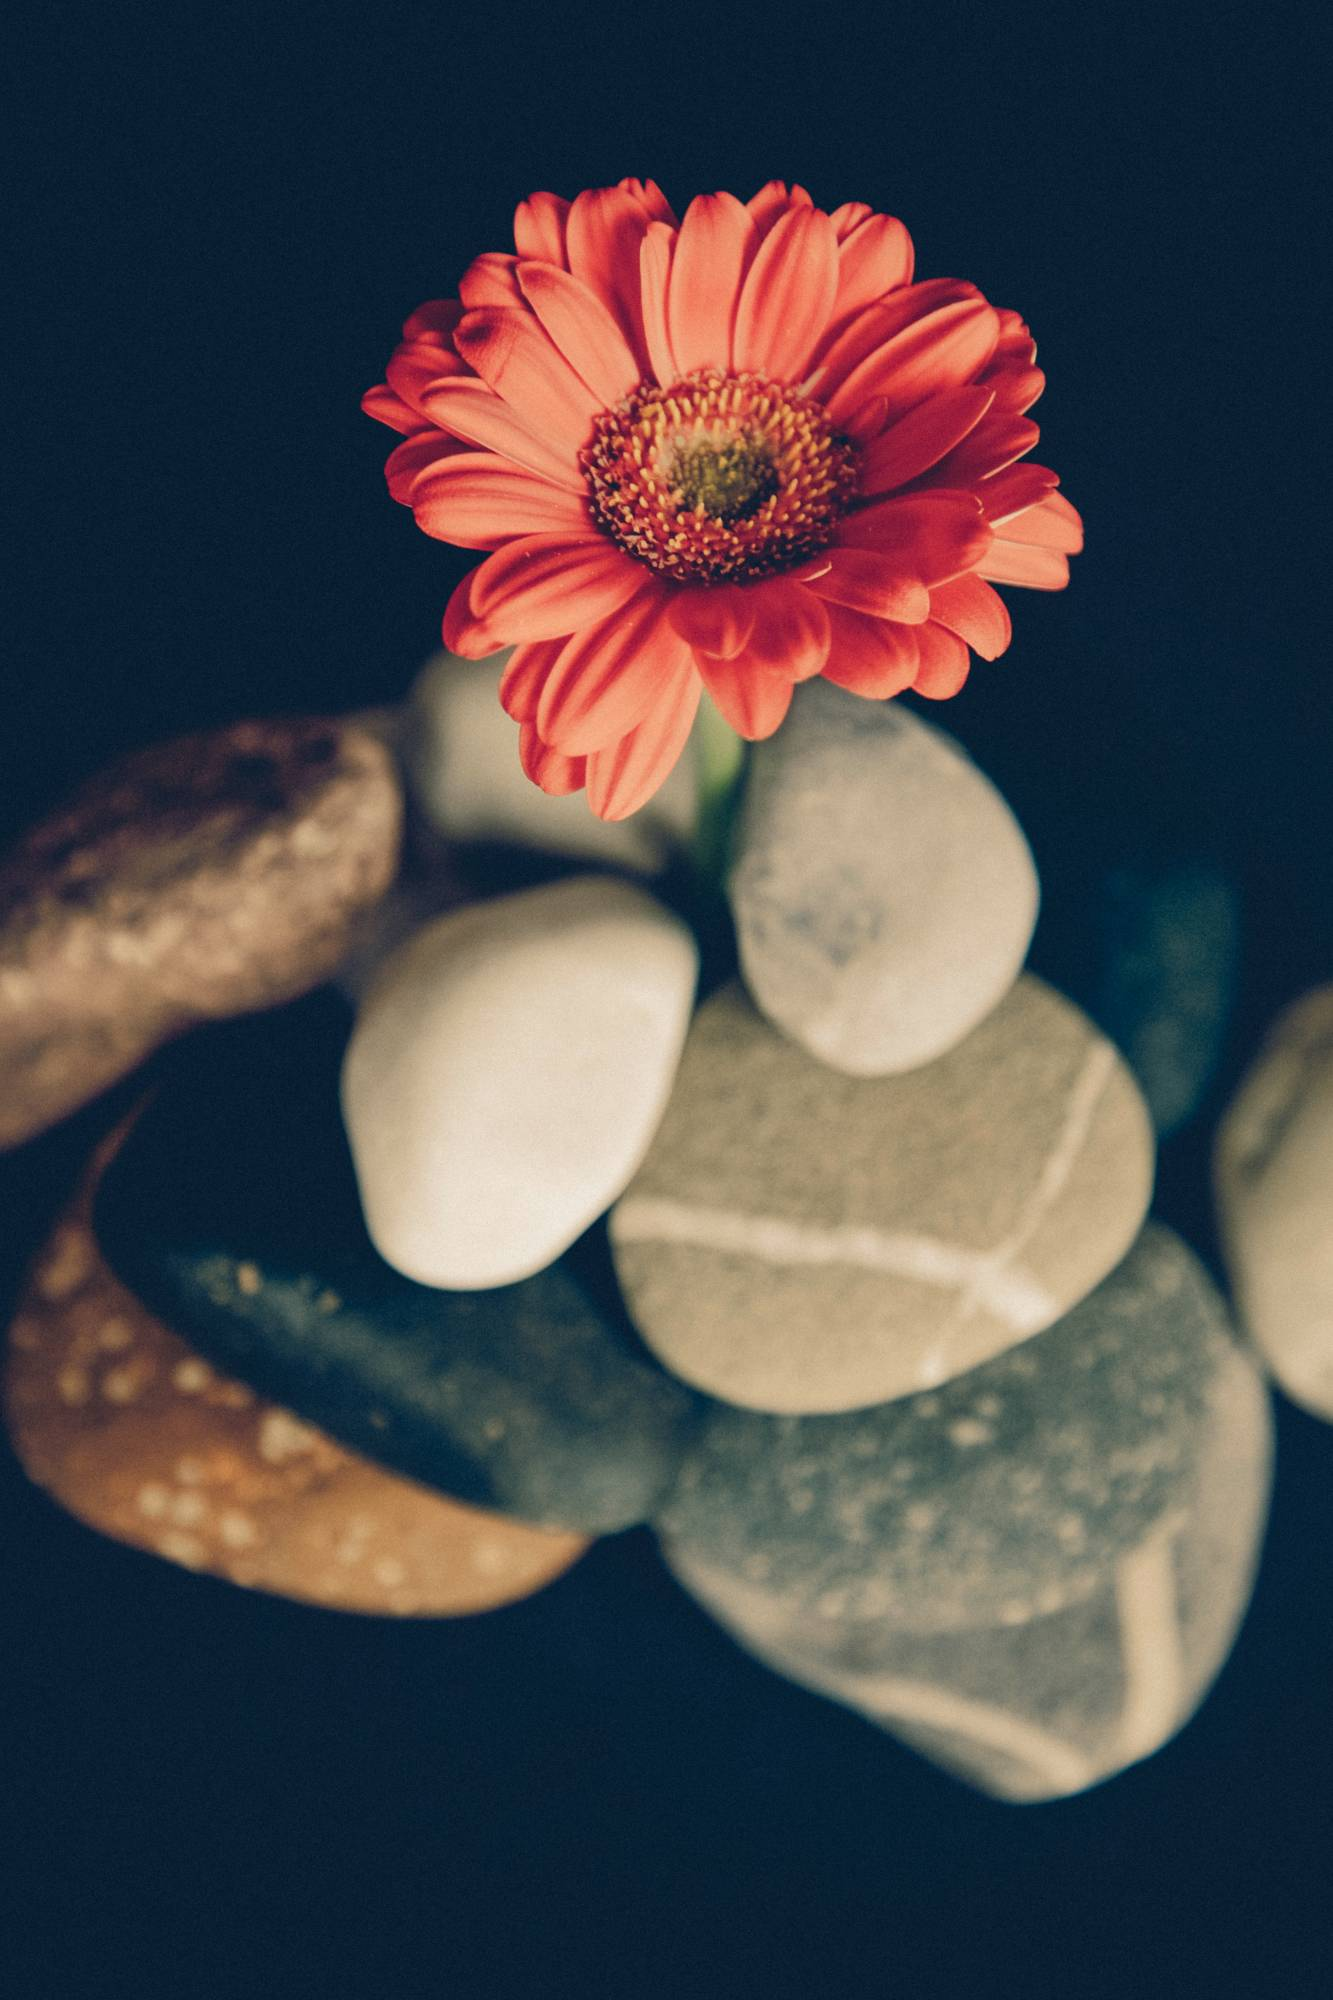 smooth rocks and a red flower